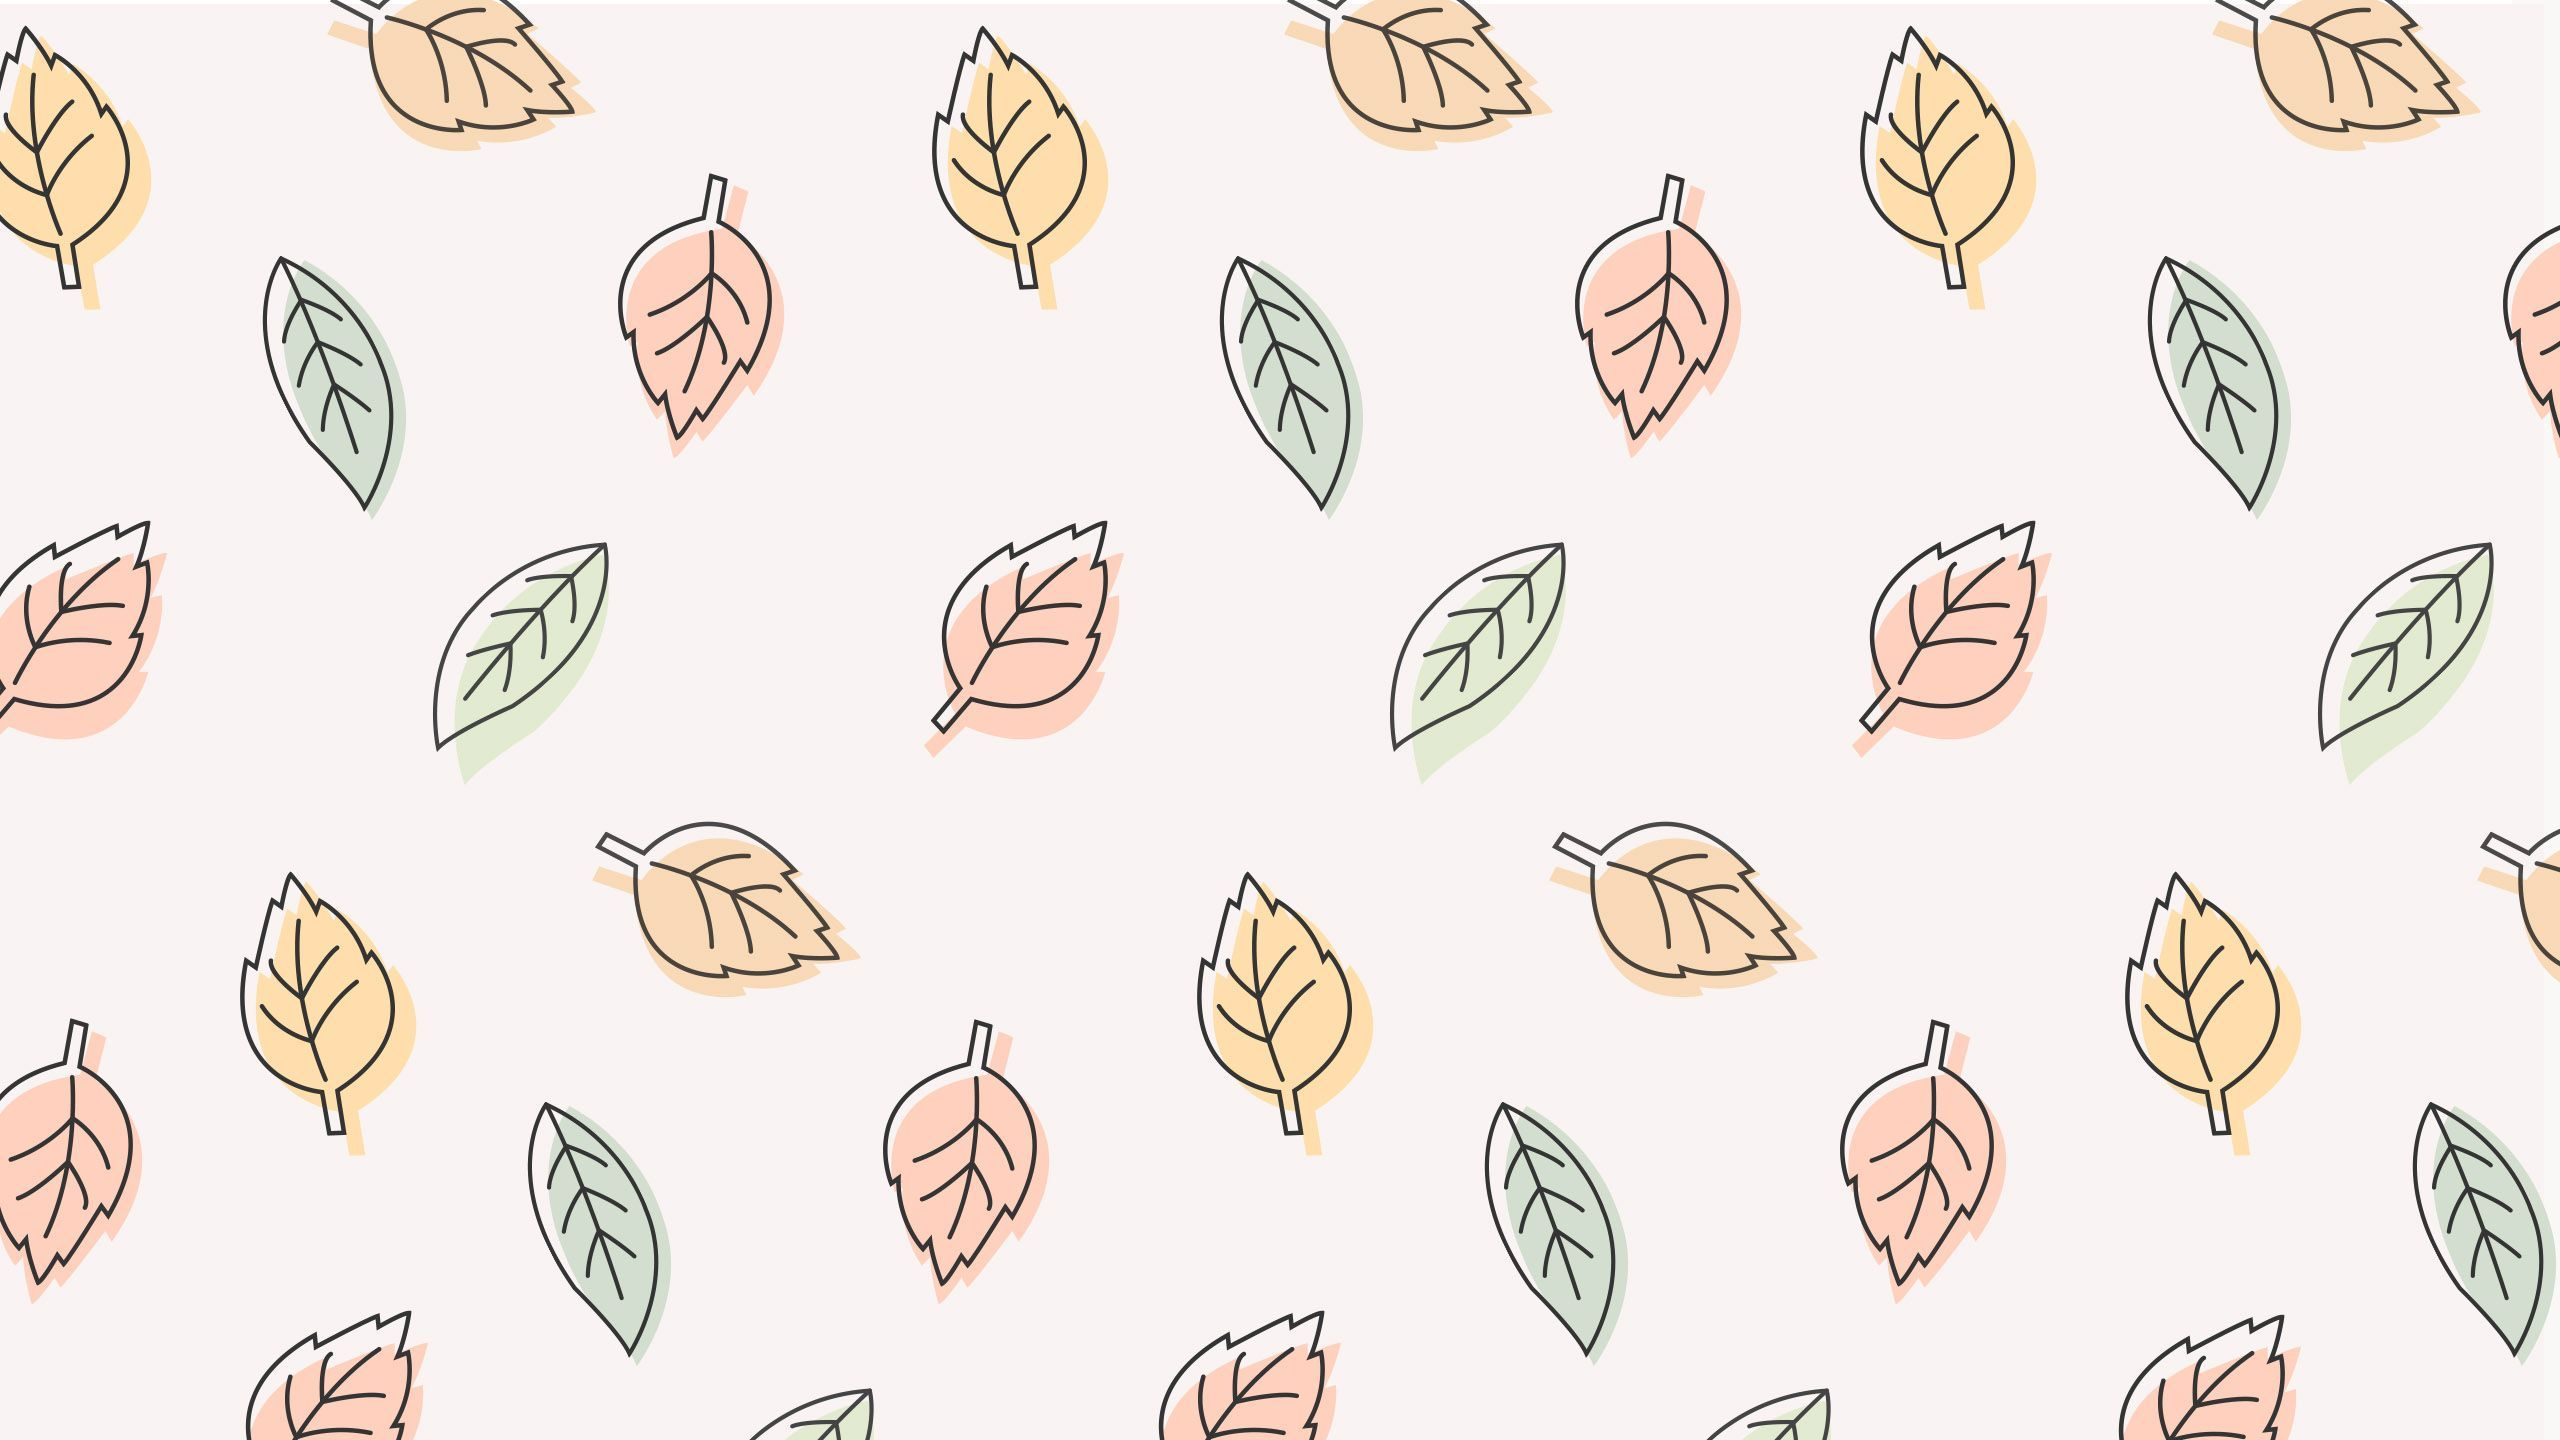 Fall Wallpaper Aesthetic Computer Mywallpapers Site Computer Wallpaper Desktop Wallpapers Cute Desktop Wallpaper Laptop Wallpaper Desktop Wallpapers